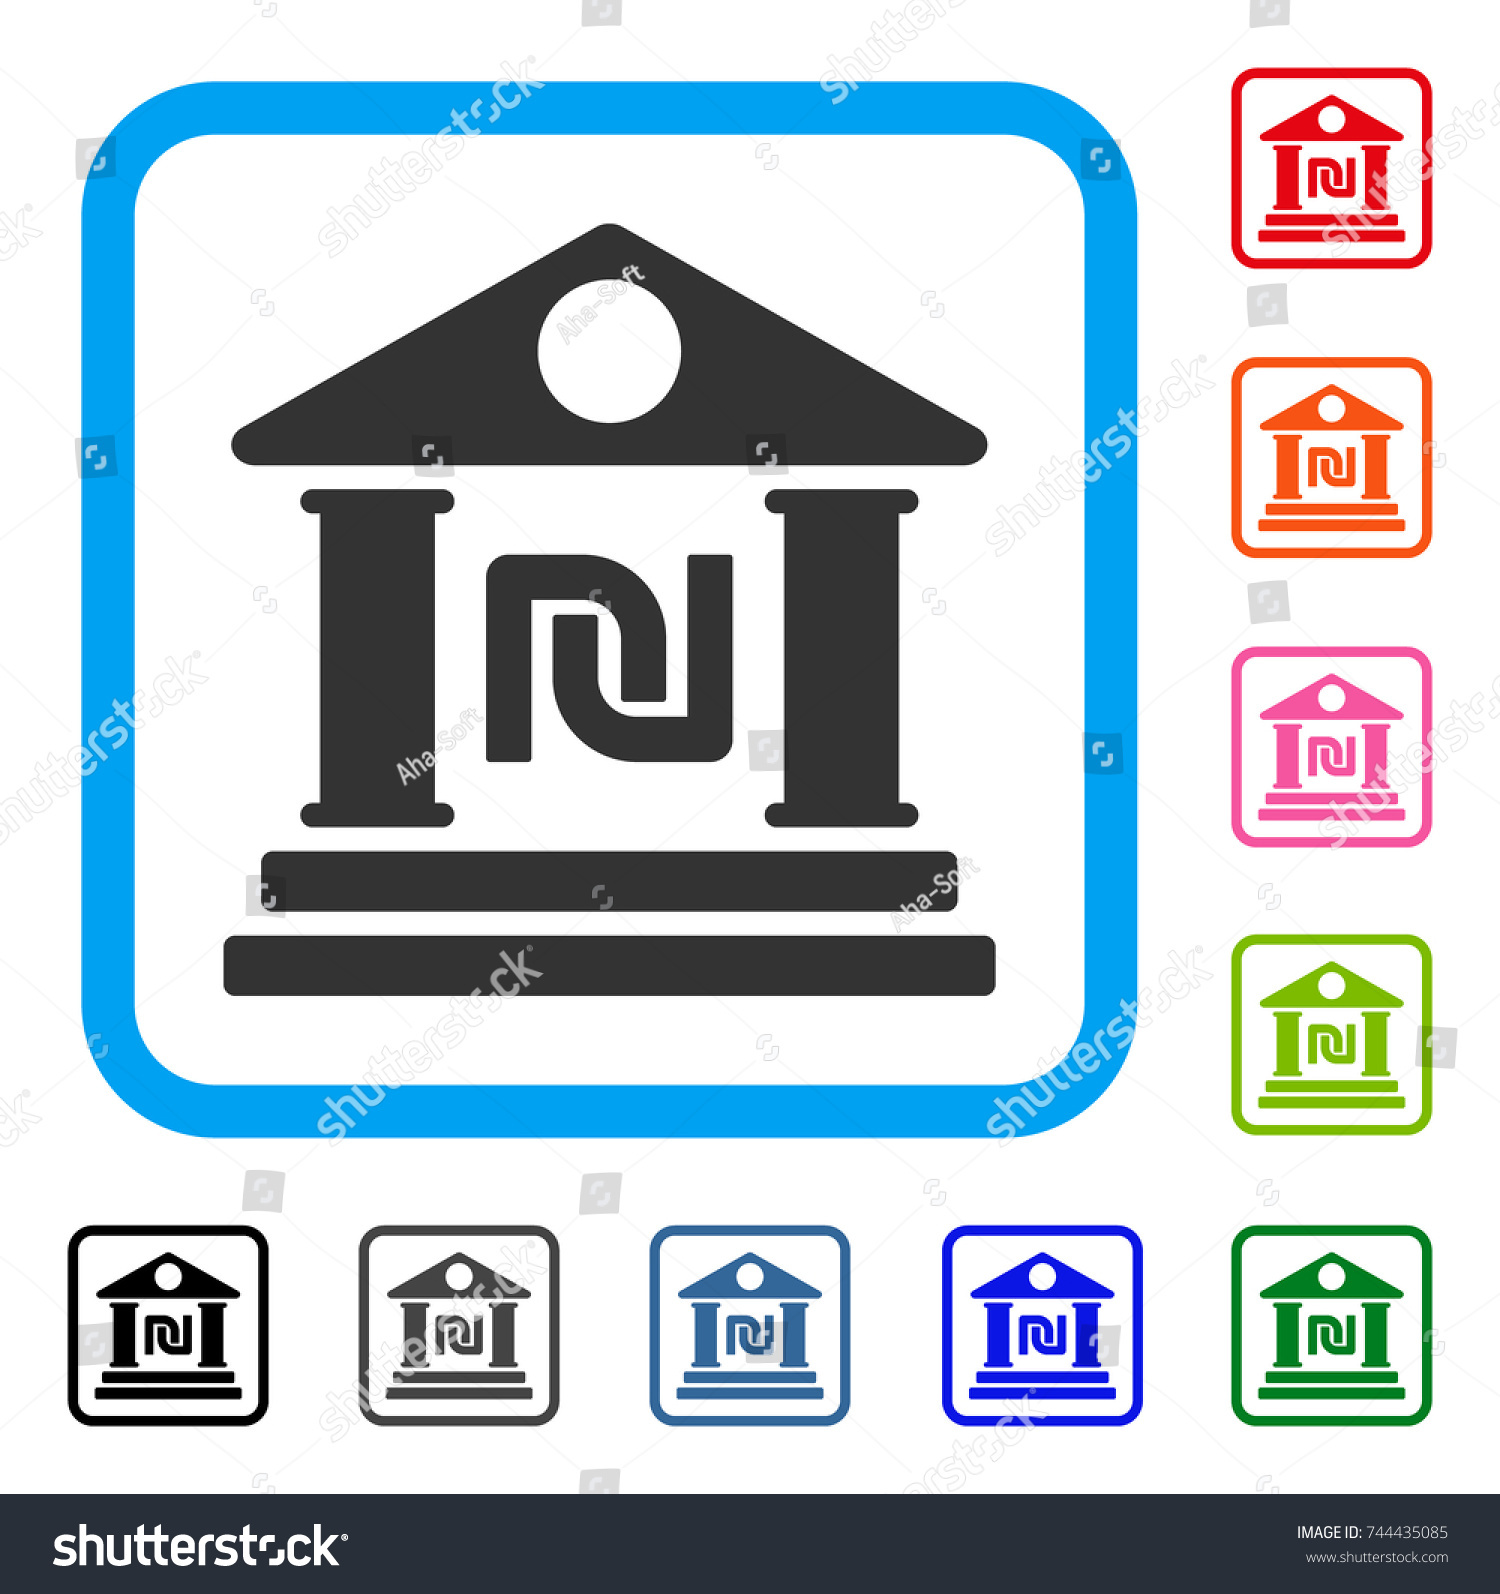 Shekel bank building icon flat gray stock vector 744435085 shekel bank building icon flat gray pictogram symbol in a blue rounded squared frame biocorpaavc Gallery